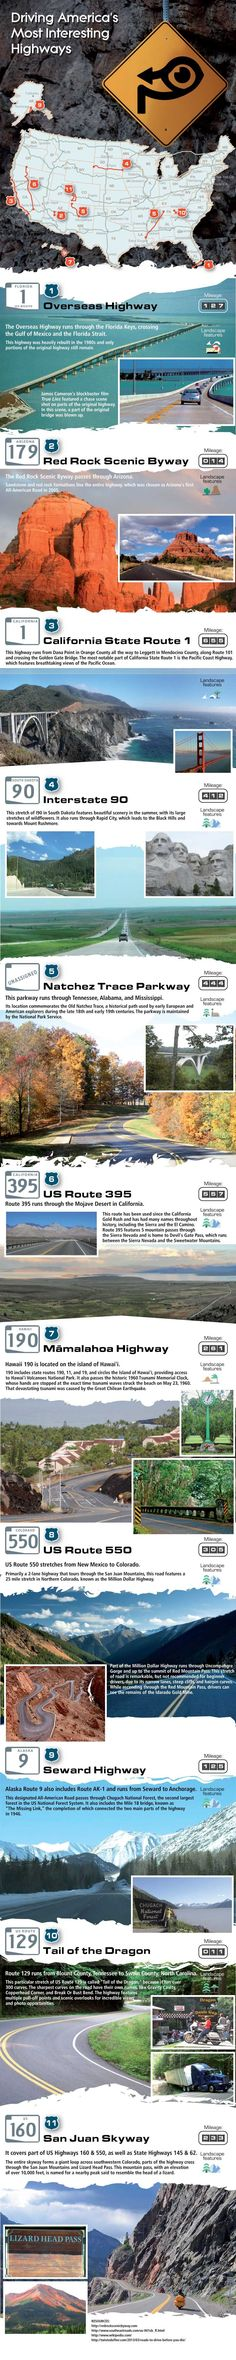 Awesome infographic guide to some of the most interesting highways to drive…